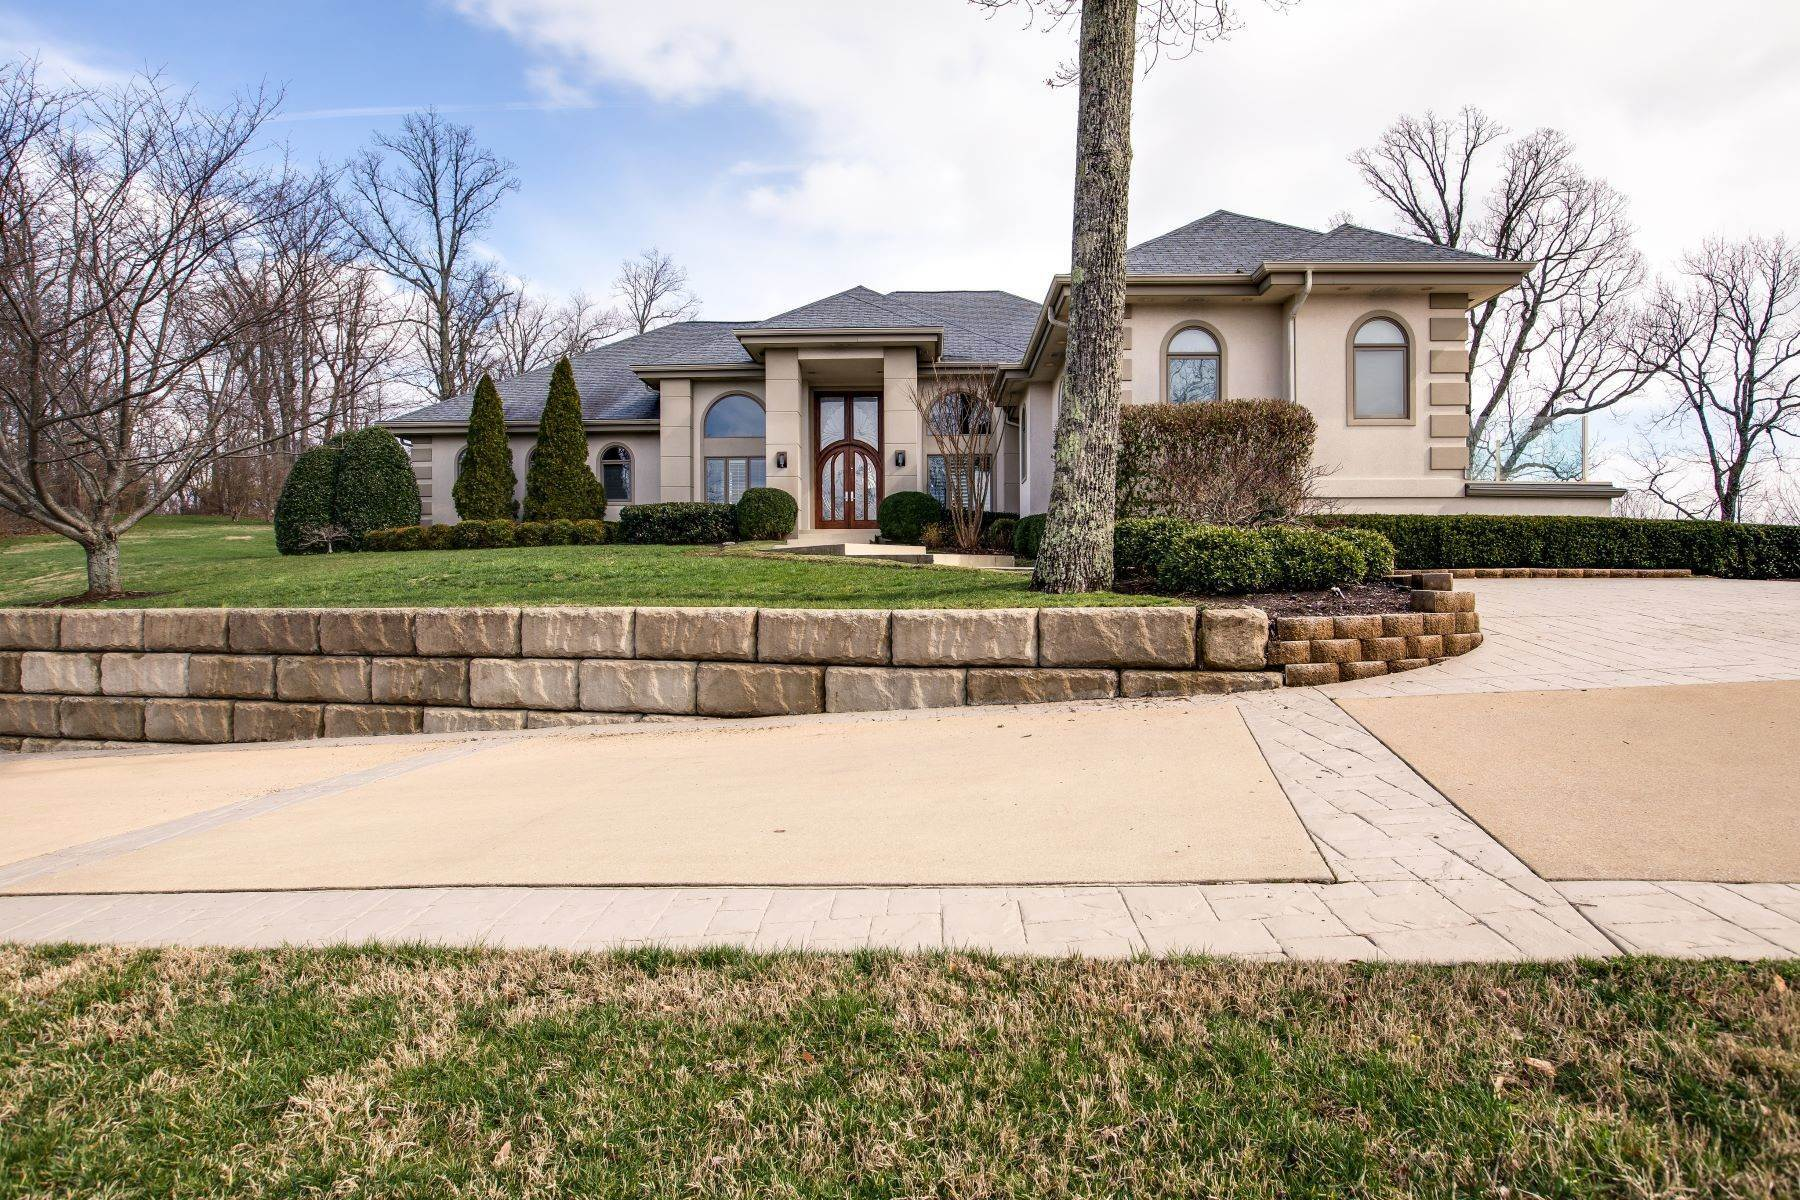 48. Single Family Homes for Sale at Luxury Brentwood Home 720 Valhalla Lane Brentwood, Tennessee 37027 United States